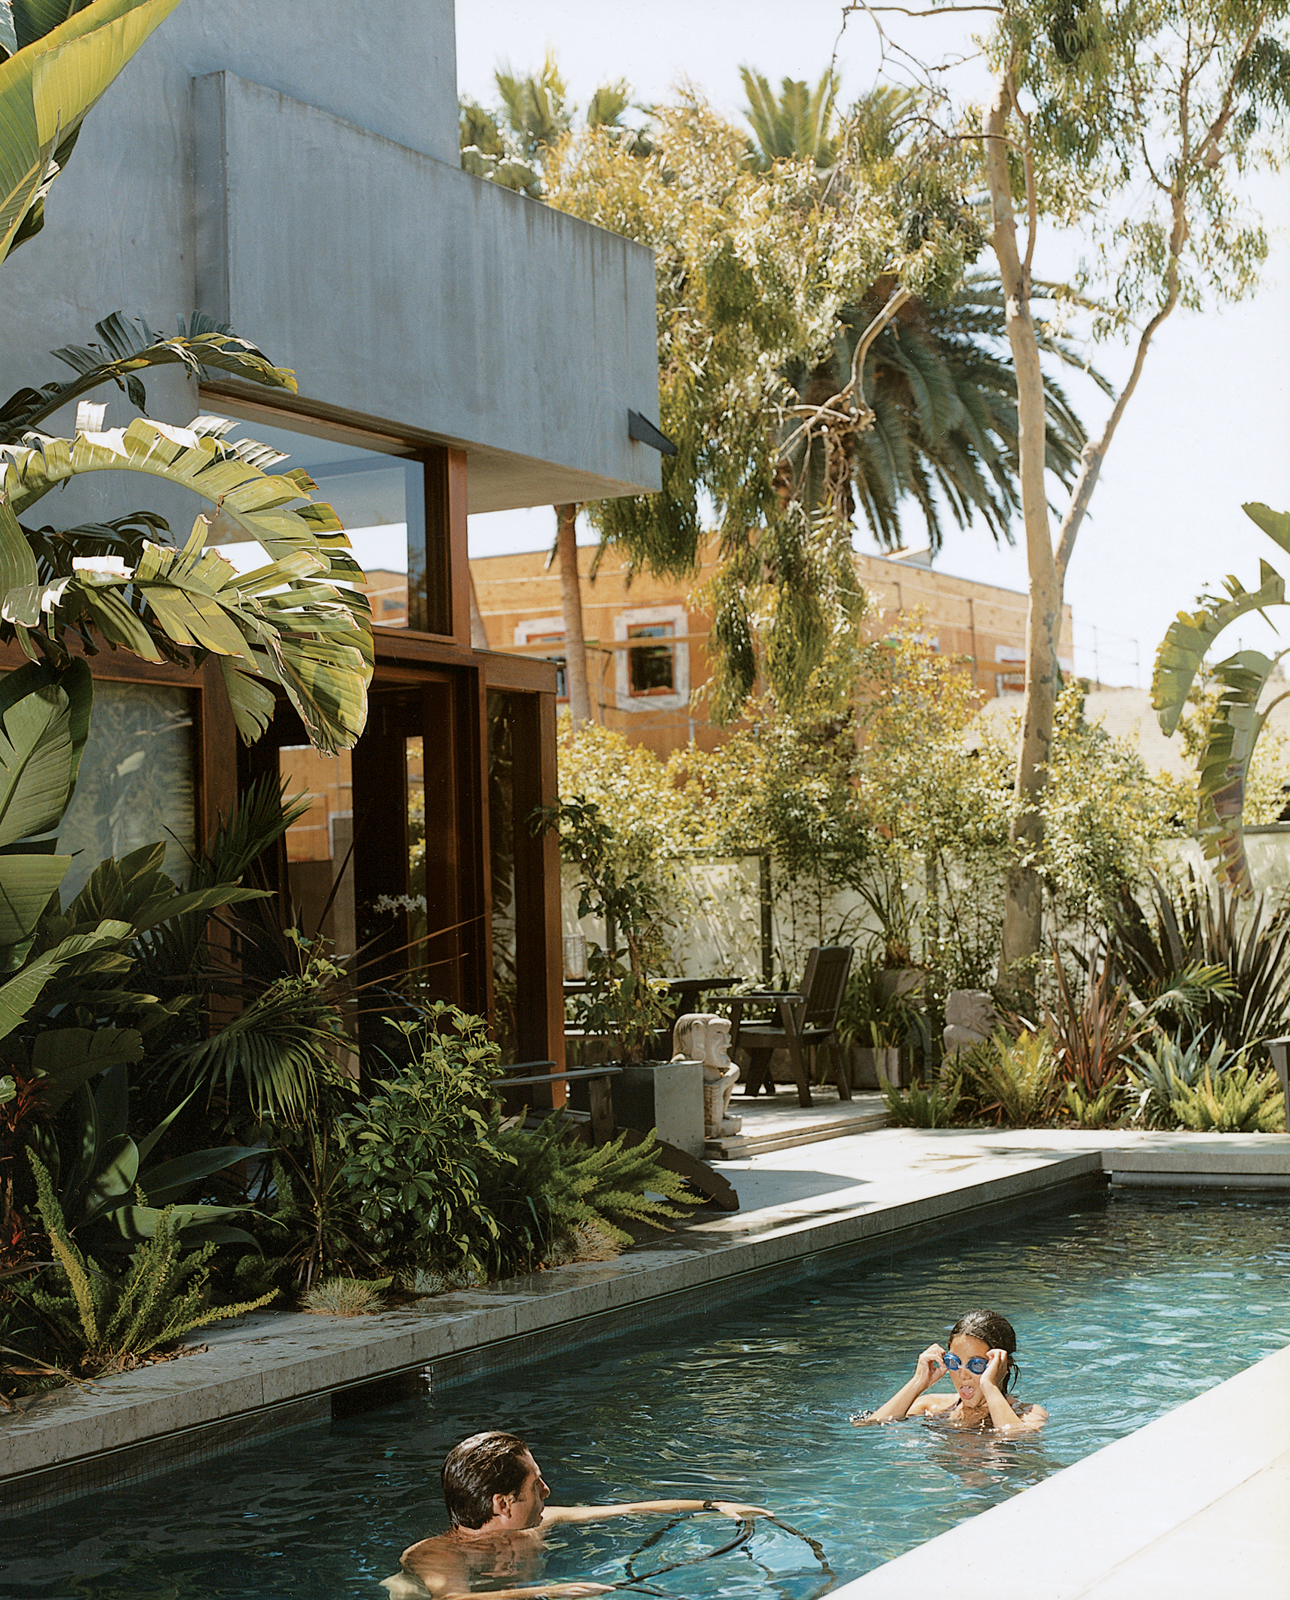 """Sophie and Colin enjoy their new pool, the only non-solar-powered portion of their home in Venice, California, created by their father, architect David Hertz. <a href=""""http://www.dwell.com/articles/sustainability-in-stages.html"""">Read the full article here"""